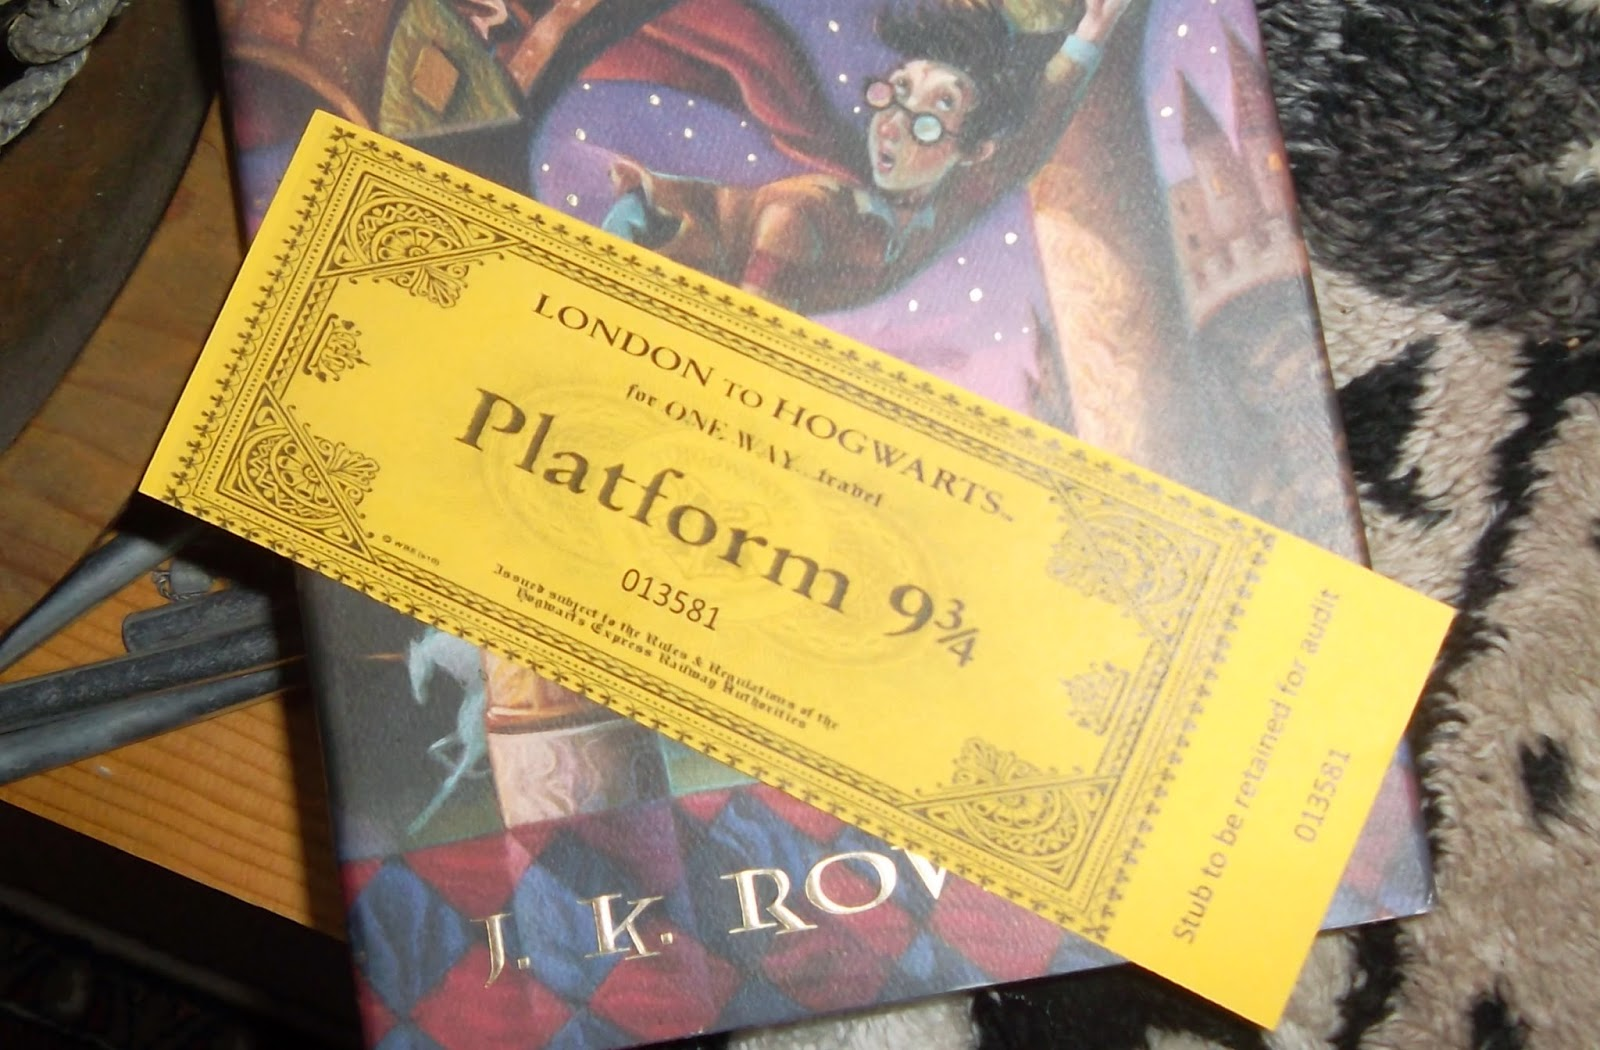 Hogwarts Express travel-ticket bookmark on top of Harry Potter and the Sorceror's Stone by J.K. Rowling